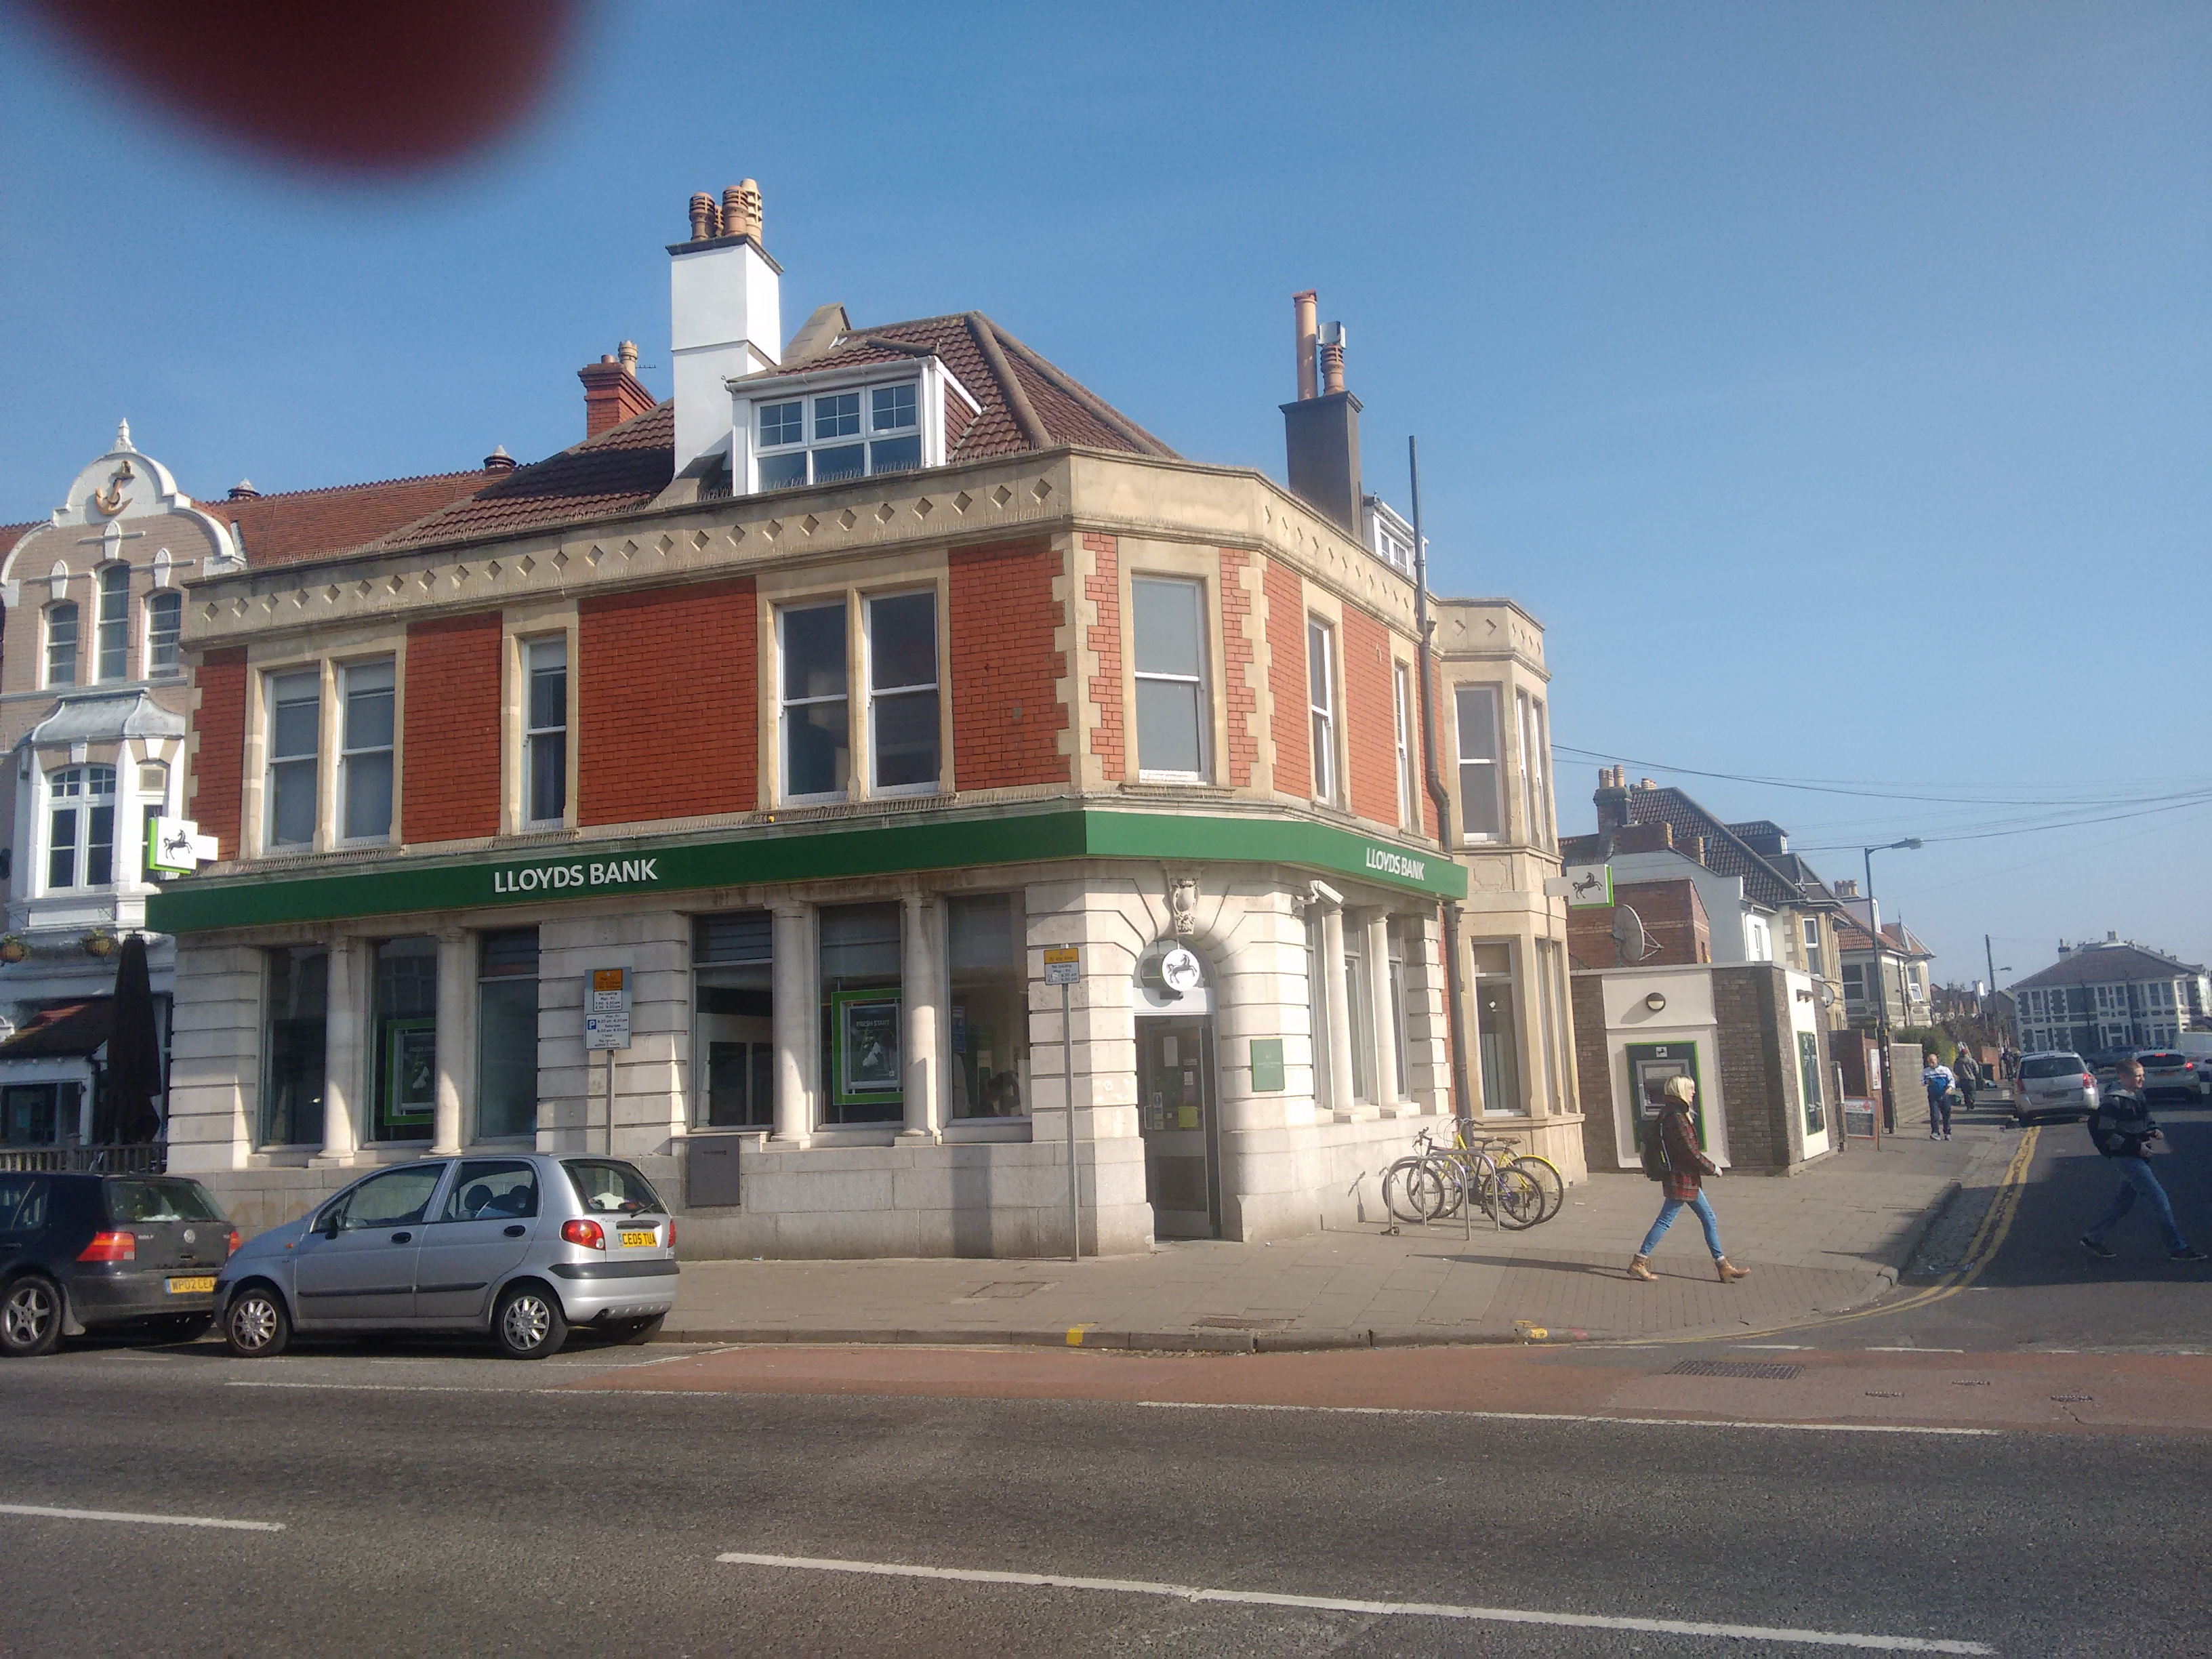 317, Gloucester Road dated 2016-03-14 from Full Survey 2017